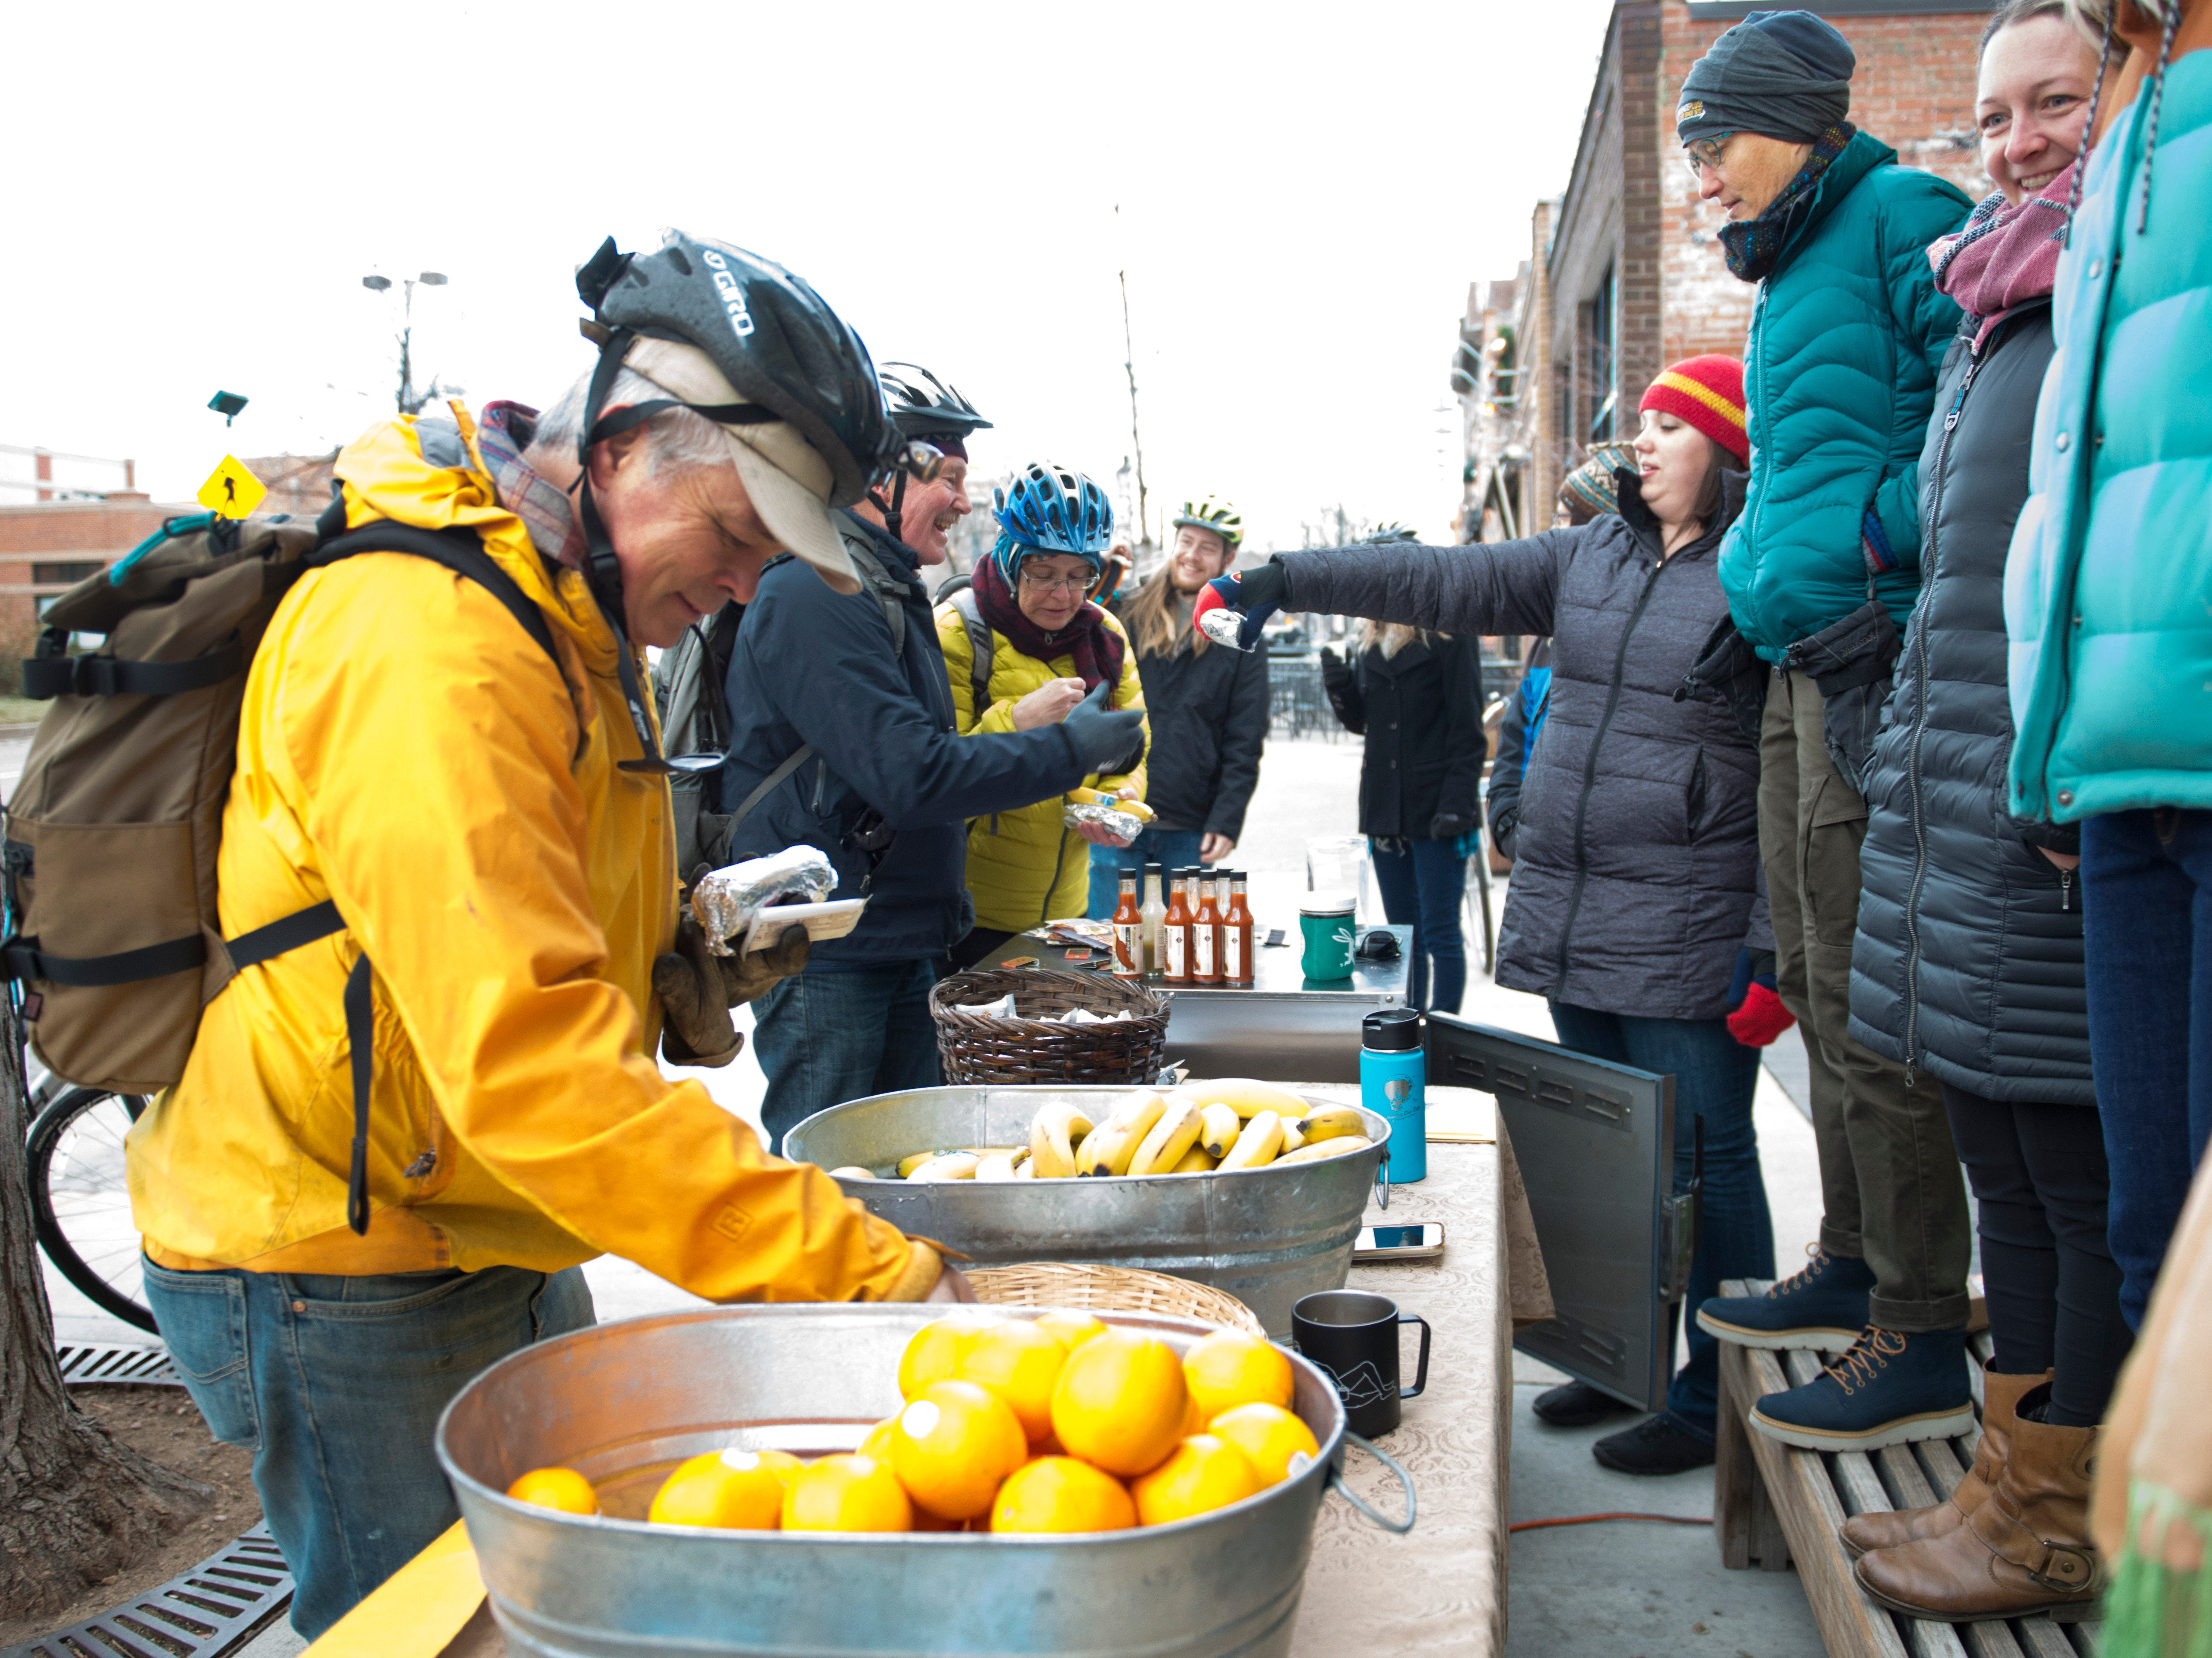 People line up for breakfast outside of the Mountain Avenue Market during Winter Bike to Work Day on Wednesday, December 12, 2018. Commuters were treated to free breakfast and coffee at nearly 50 stations around Fort Collins.